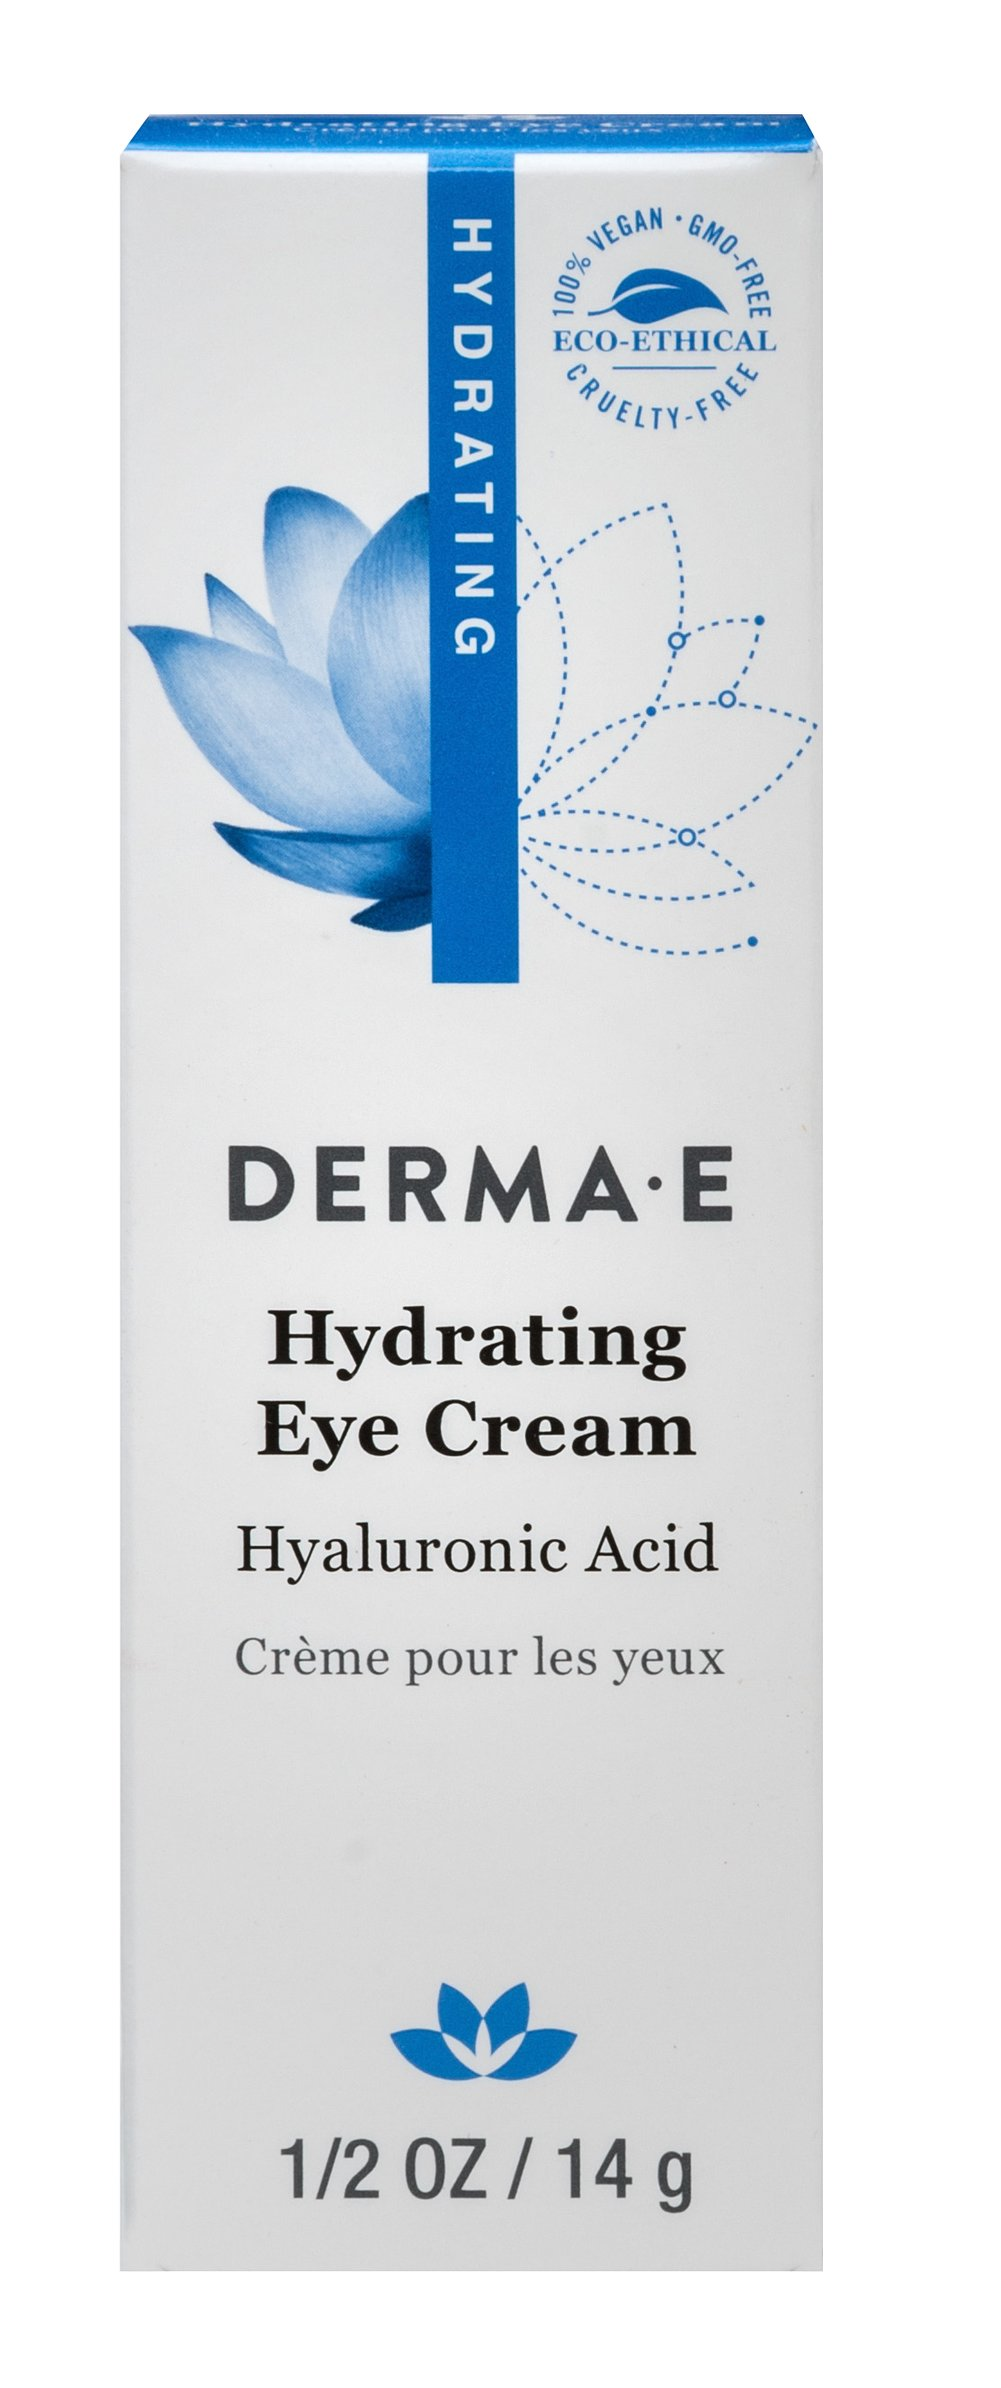 Derma E® Hyaluronic & Pycnogenol® Eye Crème <p><strong>From the Manufacturer's Label: </strong></p><p>Pycnogenol® is a super antioxidant 50 times more powerful than Vitamin E.</p><p>Hyaluronic Acid is a naturally occurring substance that firms, tones, and rehydrates skin.</p><p>This fragrance free and delicate eye cream dramatically reduces the appearance of fine lines and wrinkles around the eye area.</p>&lt